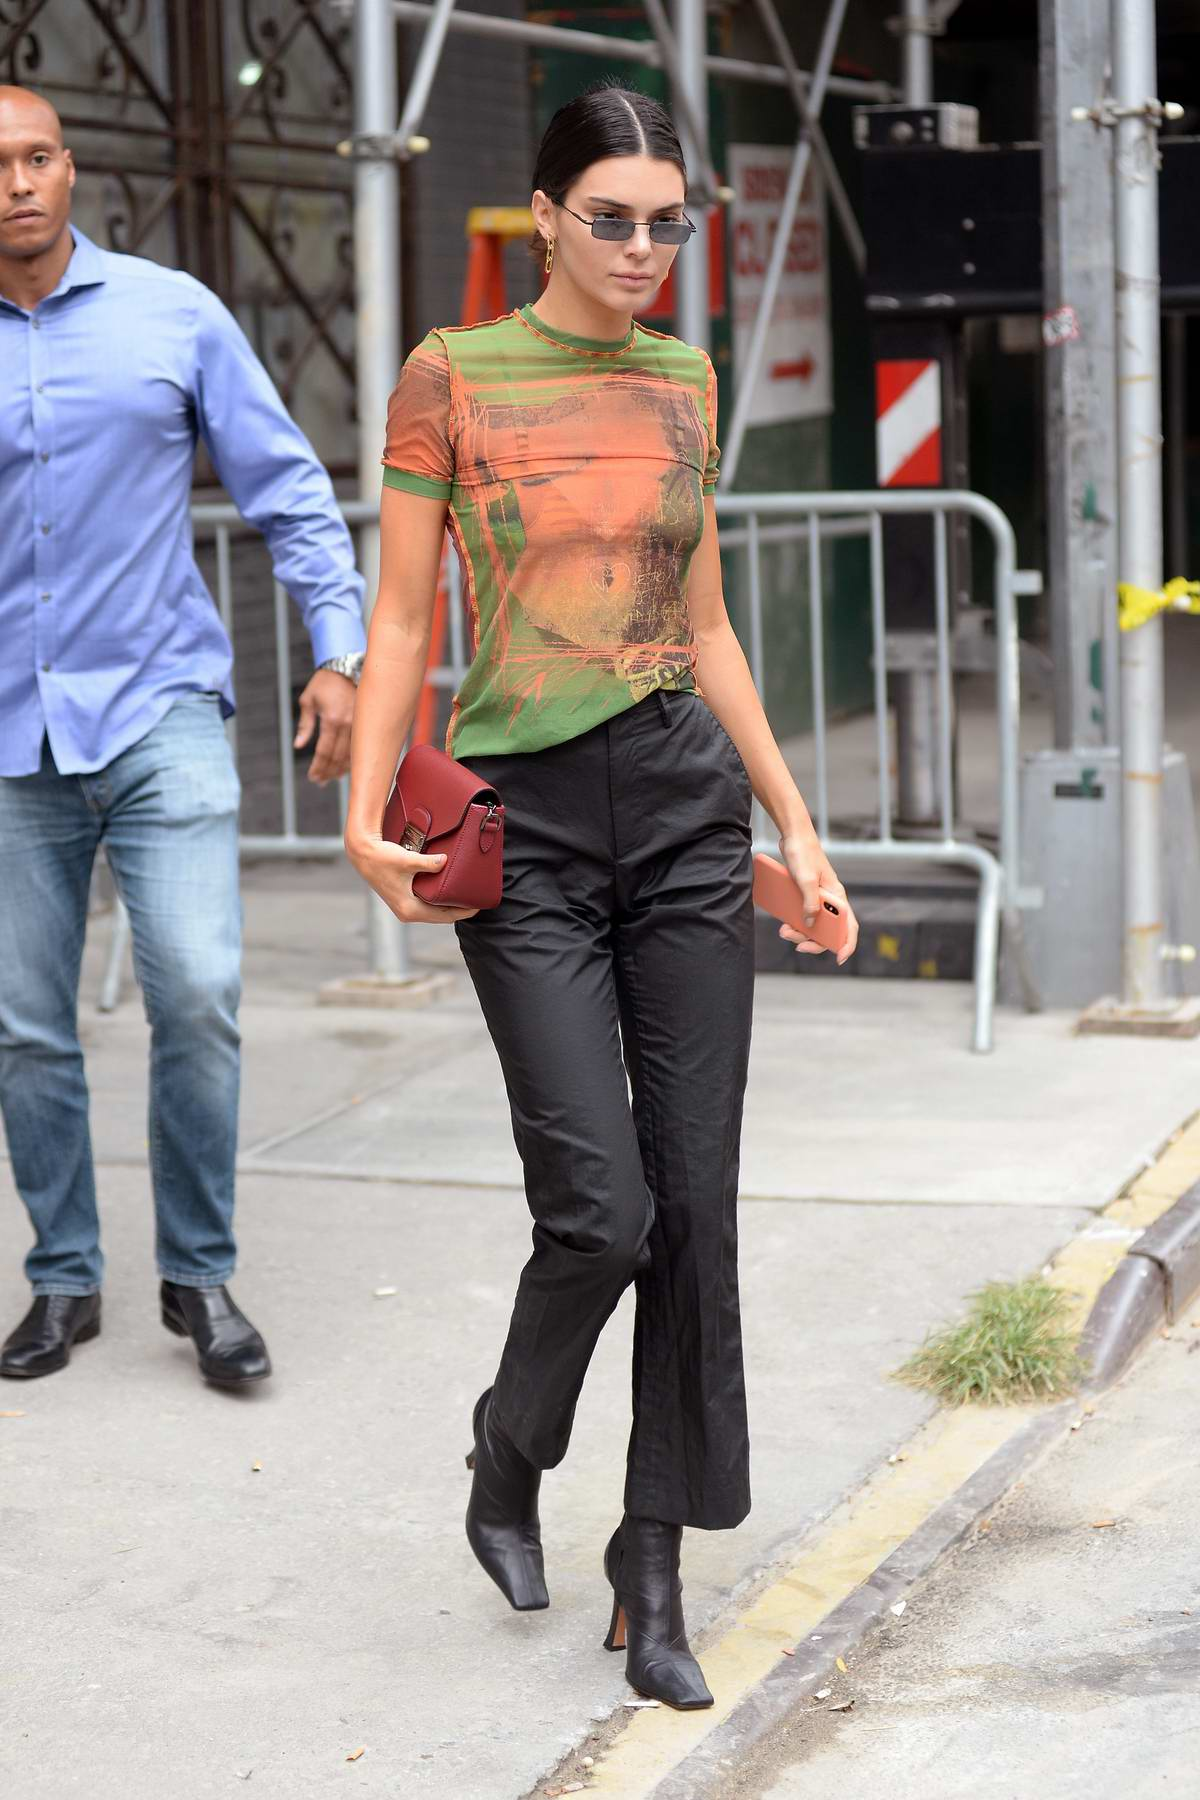 Kendall Jenner stepped out in a patterned sheer top and black trousers with black boots in New York City